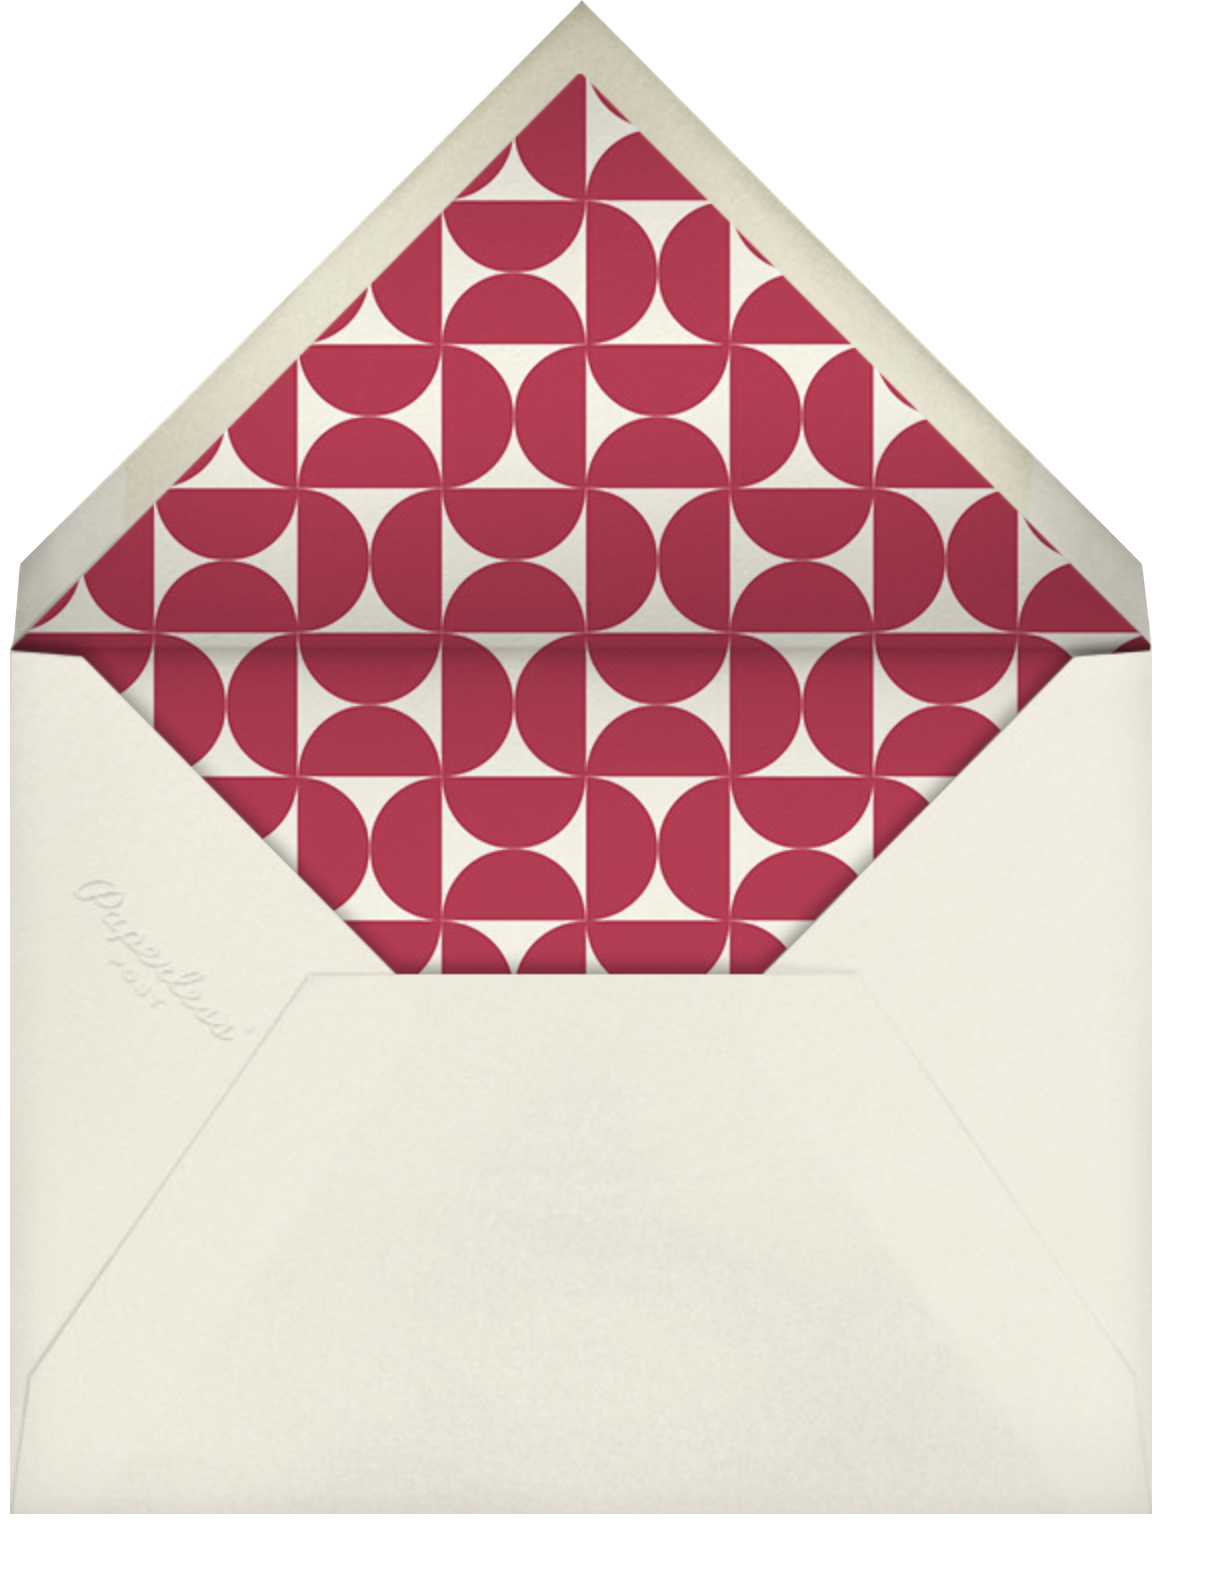 Balanced Hearts - Pink - Paperless Post - Valentine's Day - envelope back